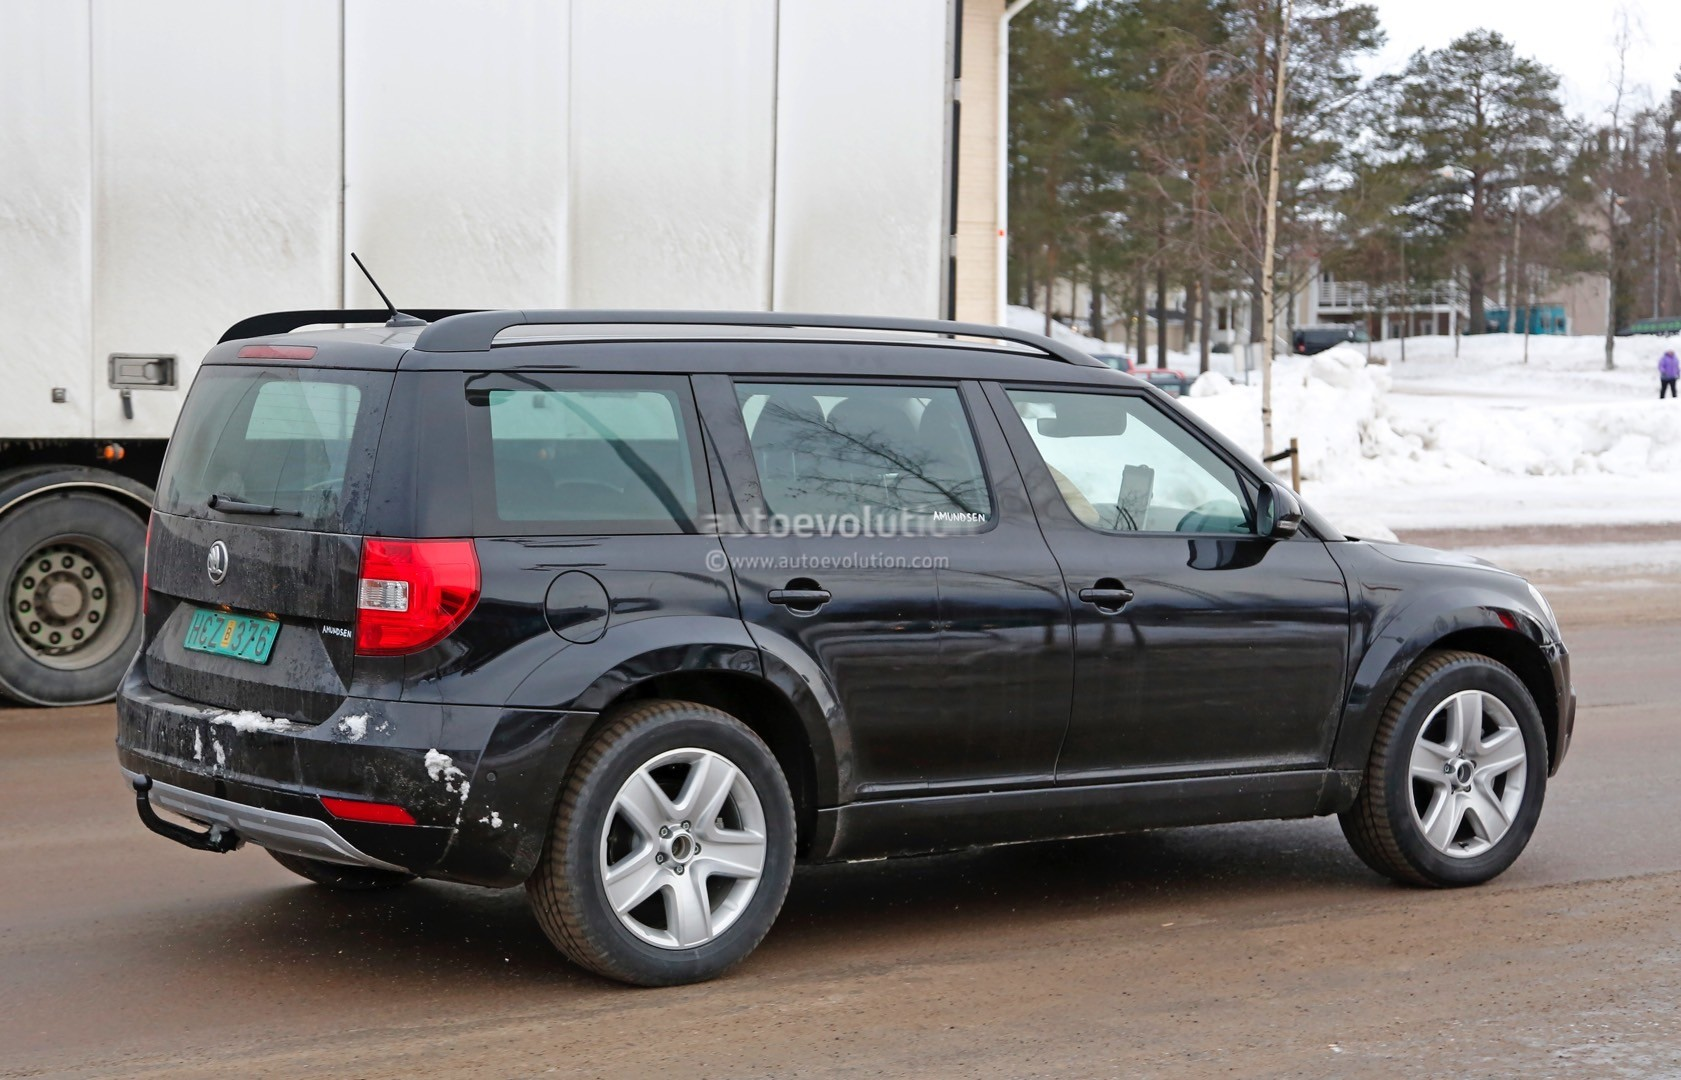 mysterious skoda yeti mule spied testing could preview much bigger suv autoevolution. Black Bedroom Furniture Sets. Home Design Ideas